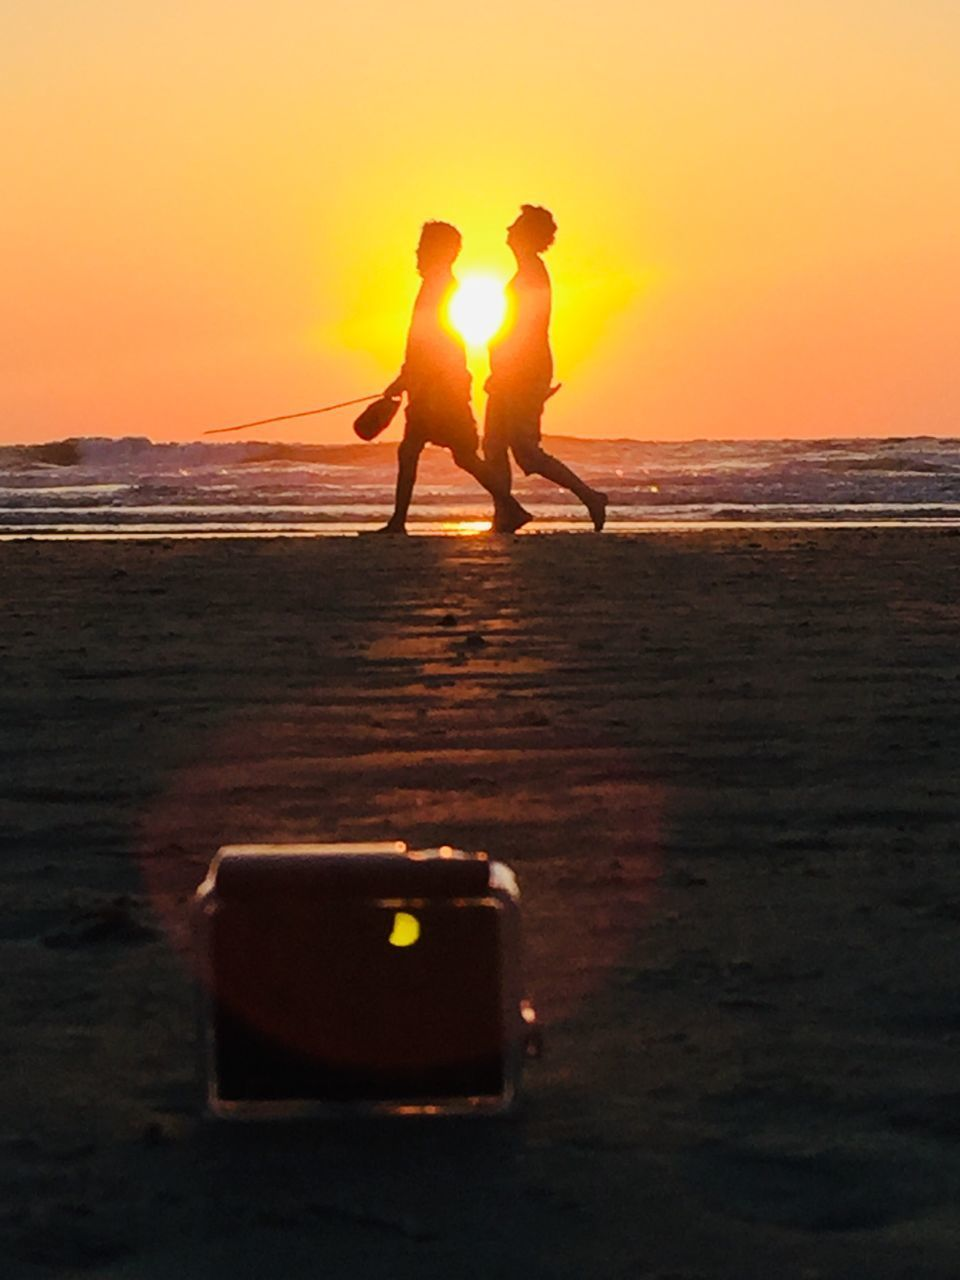 sunset, sky, orange color, sea, land, two people, beach, men, real people, water, beauty in nature, togetherness, lifestyles, nature, standing, leisure activity, silhouette, women, scenics - nature, horizon over water, outdoors, positive emotion